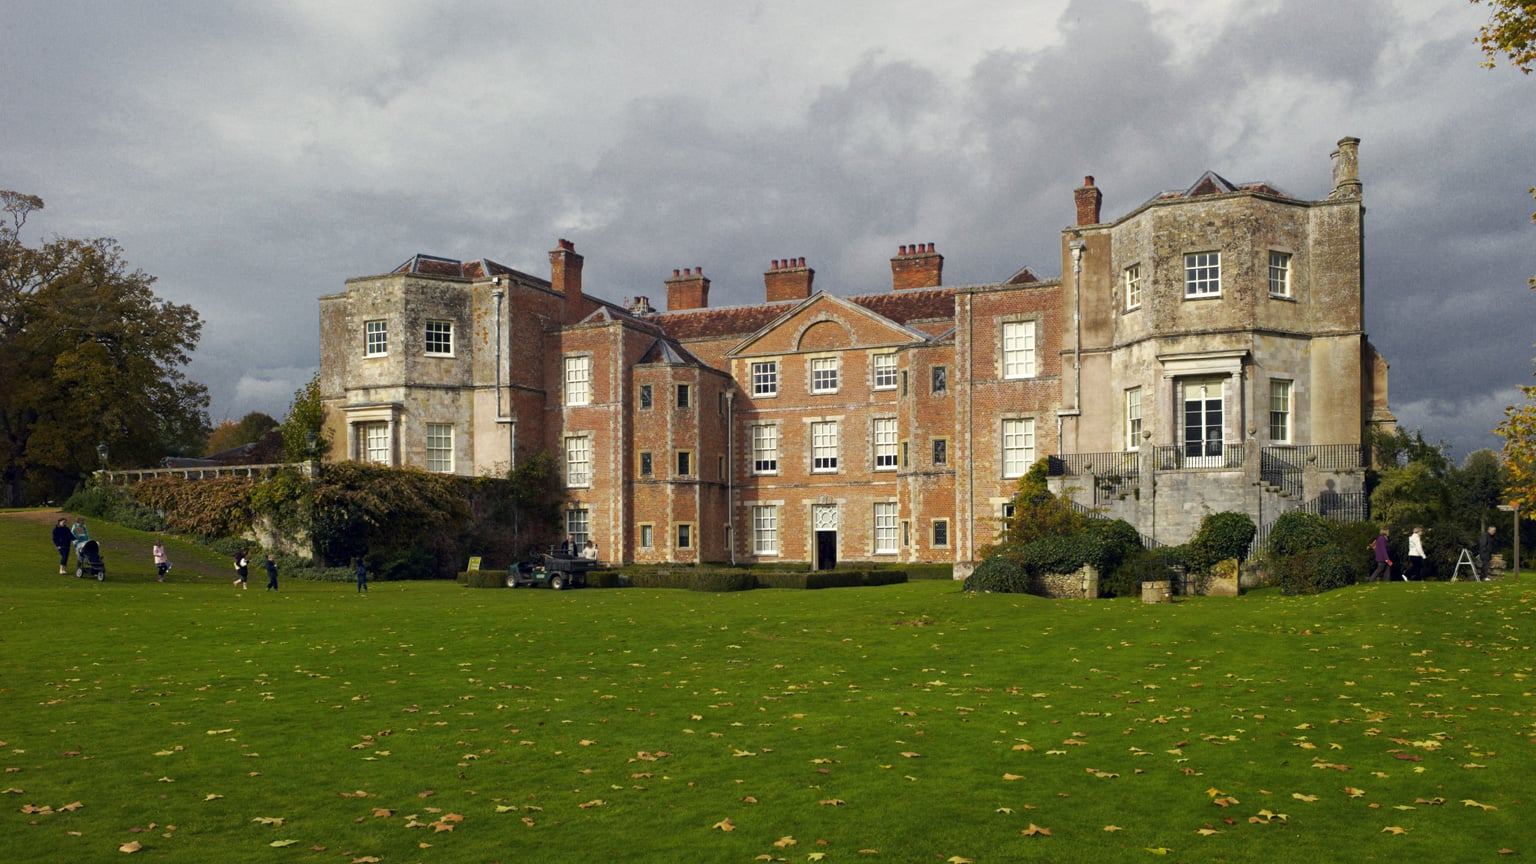 9. Mottisfont Abbey, Hampshire - Free entry with National Art Pass